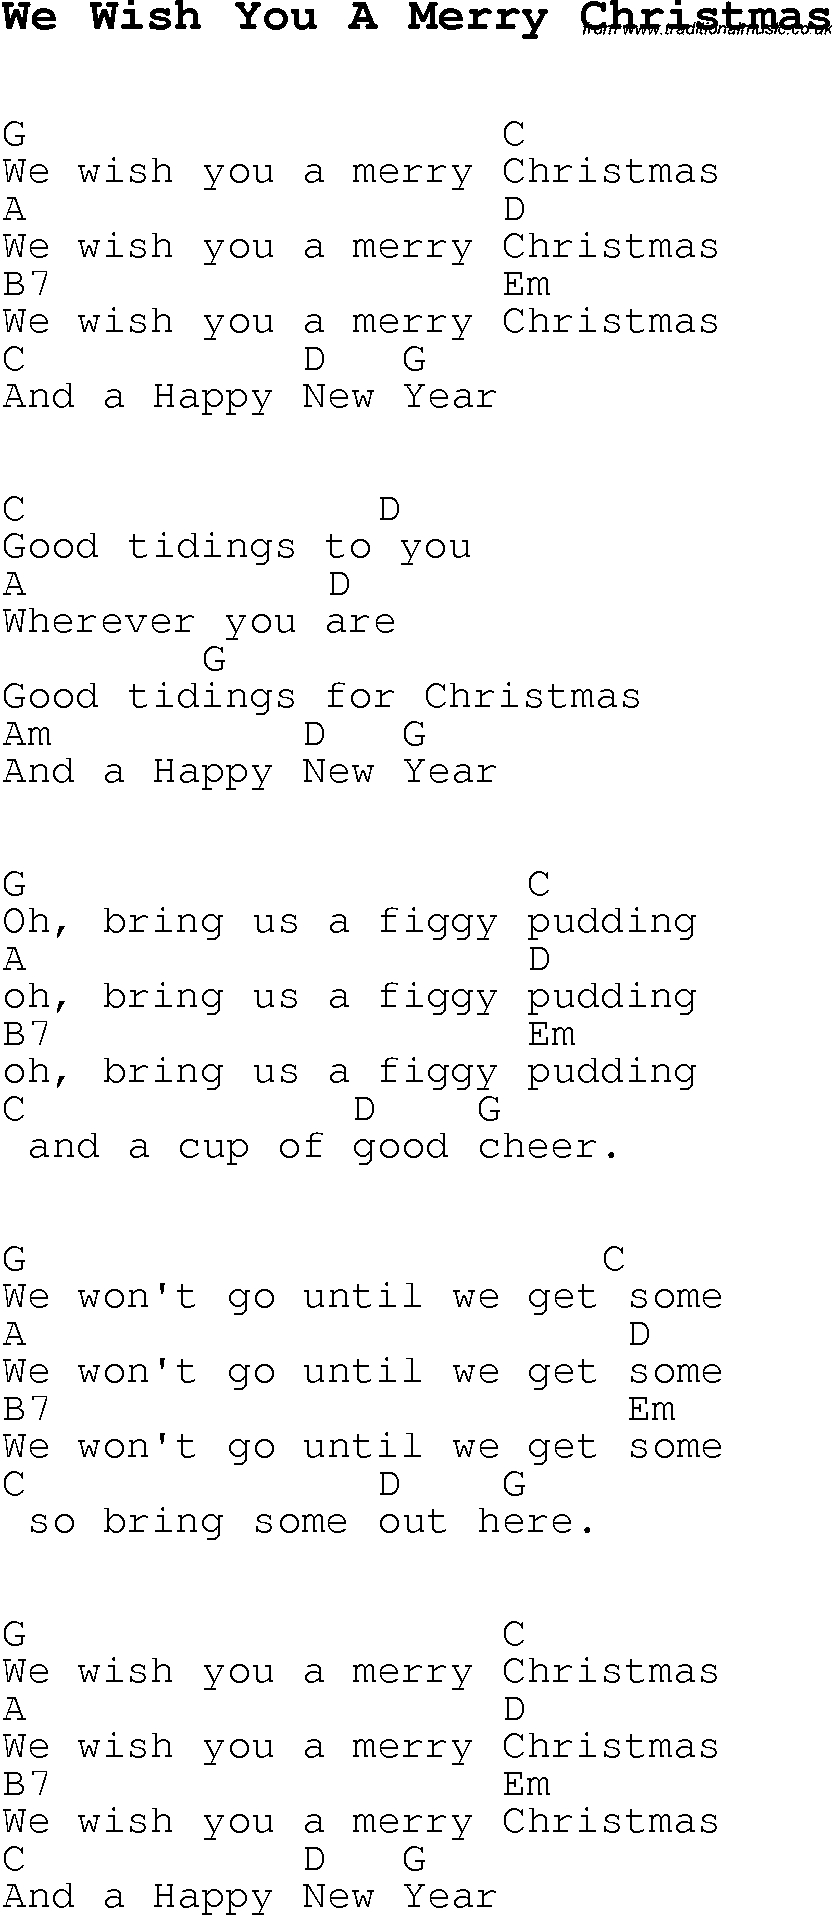 Lord I Need You Chords Christmas Carolsong Lyrics With Chords For We Wish You A Merry